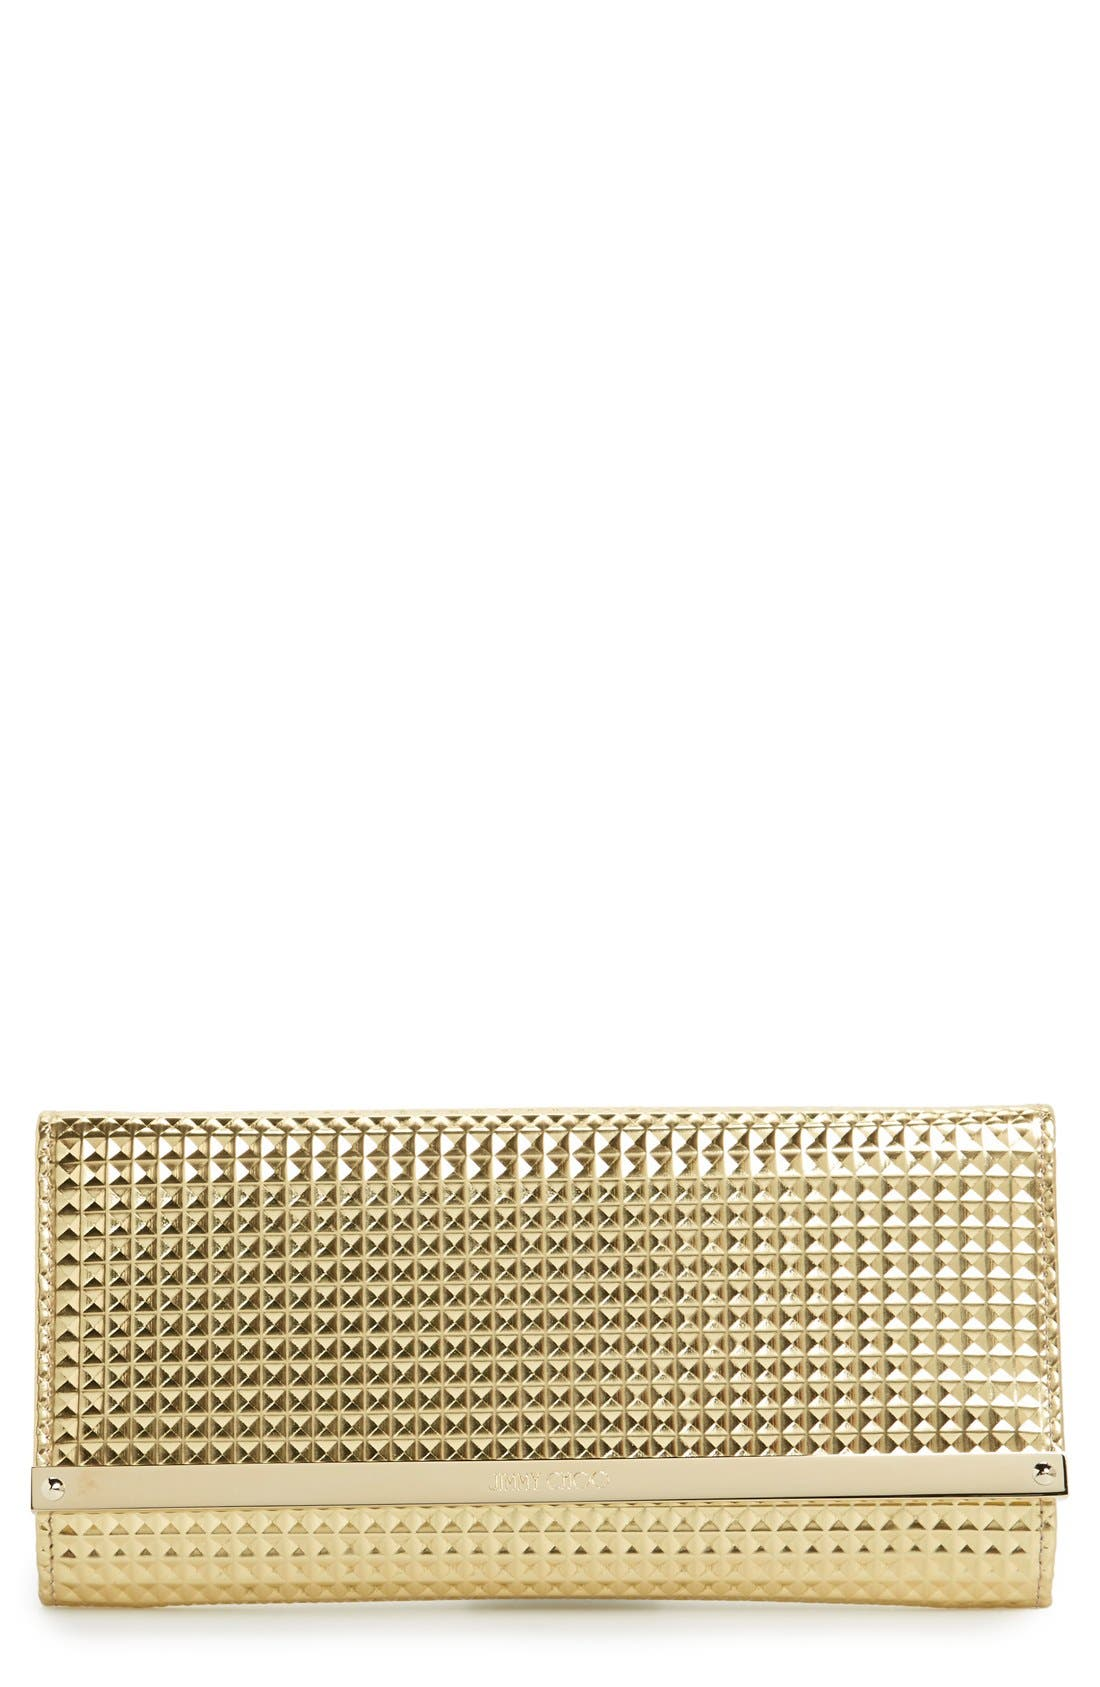 Alternate Image 1 Selected - Jimmy Choo 'Milla' Pyramid Embossed Metallic Leather Flap Clutch